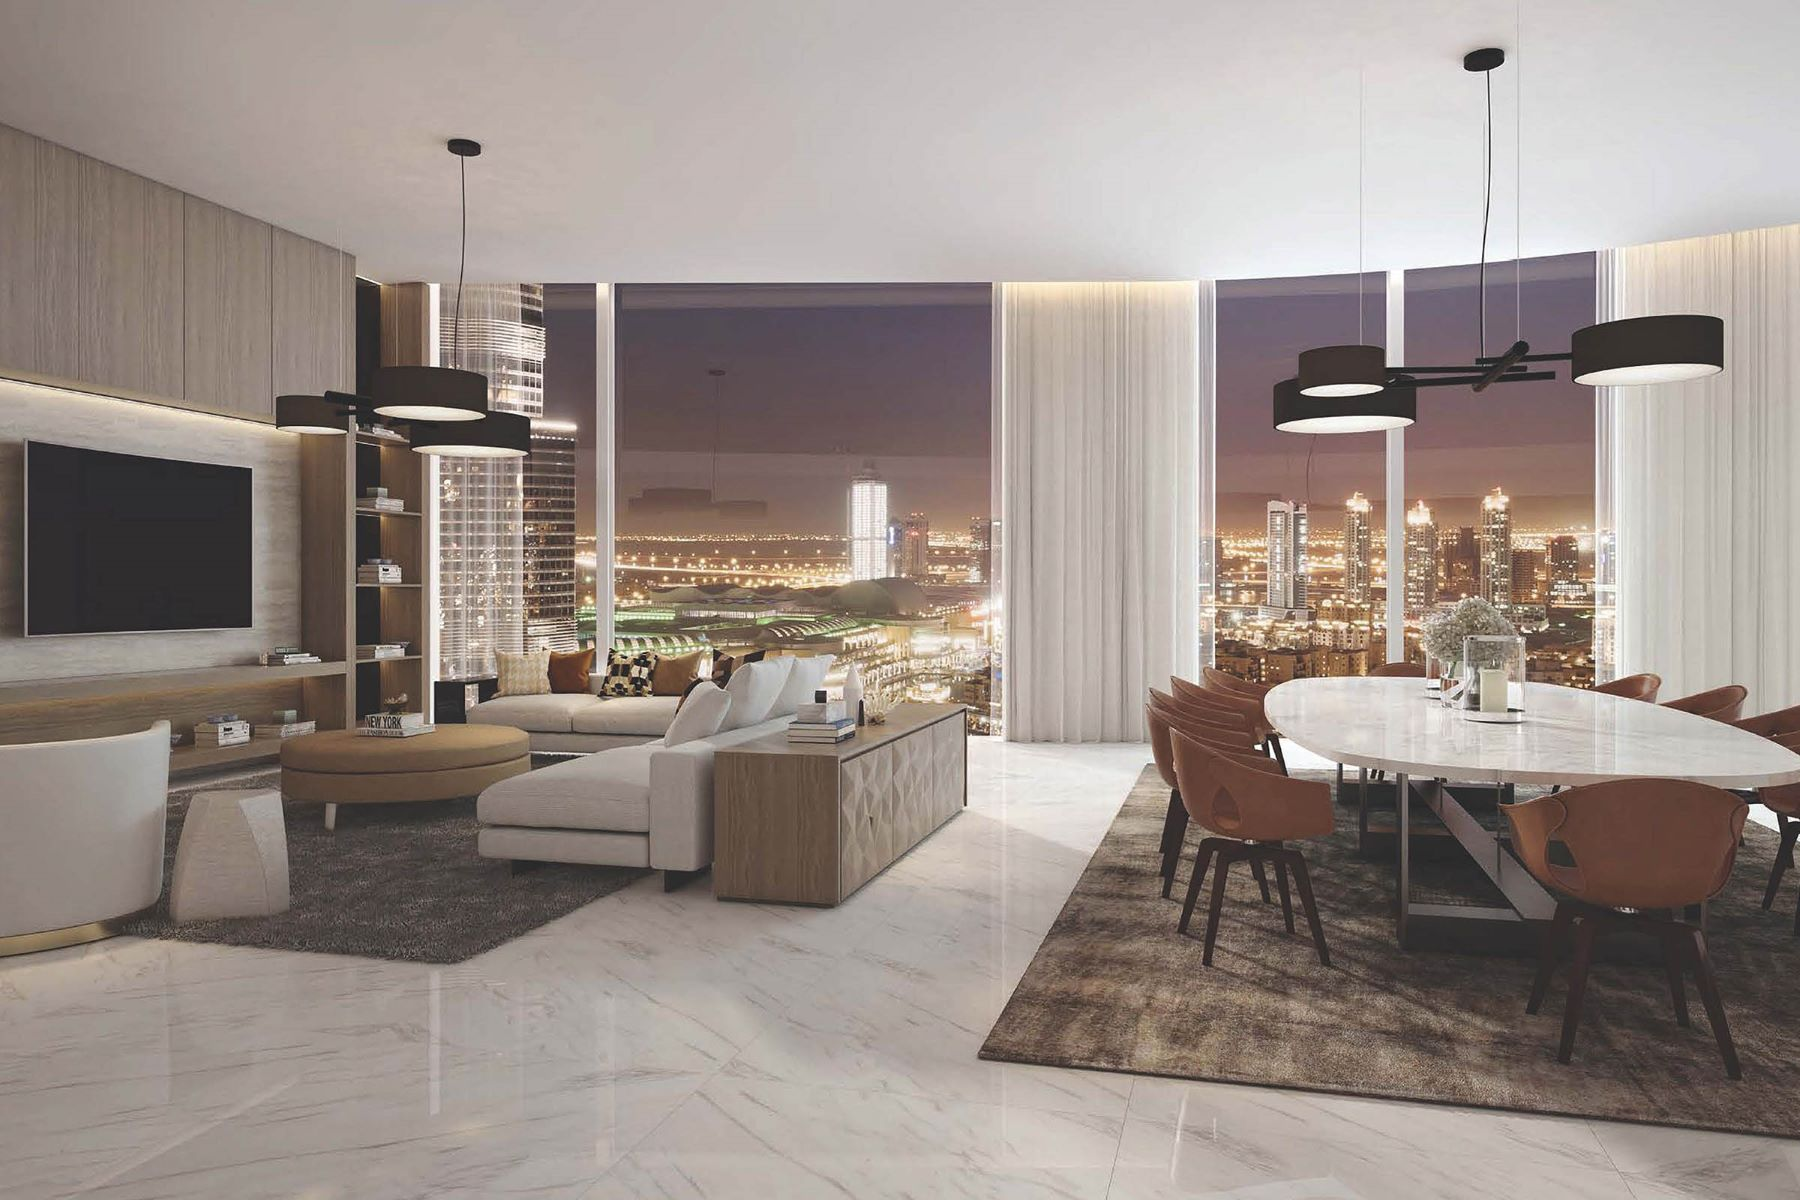 Apartments for Sale at Pay Only 25% To Move In Luxurious 4BR IL Primo Dubai, Dubai United Arab Emirates